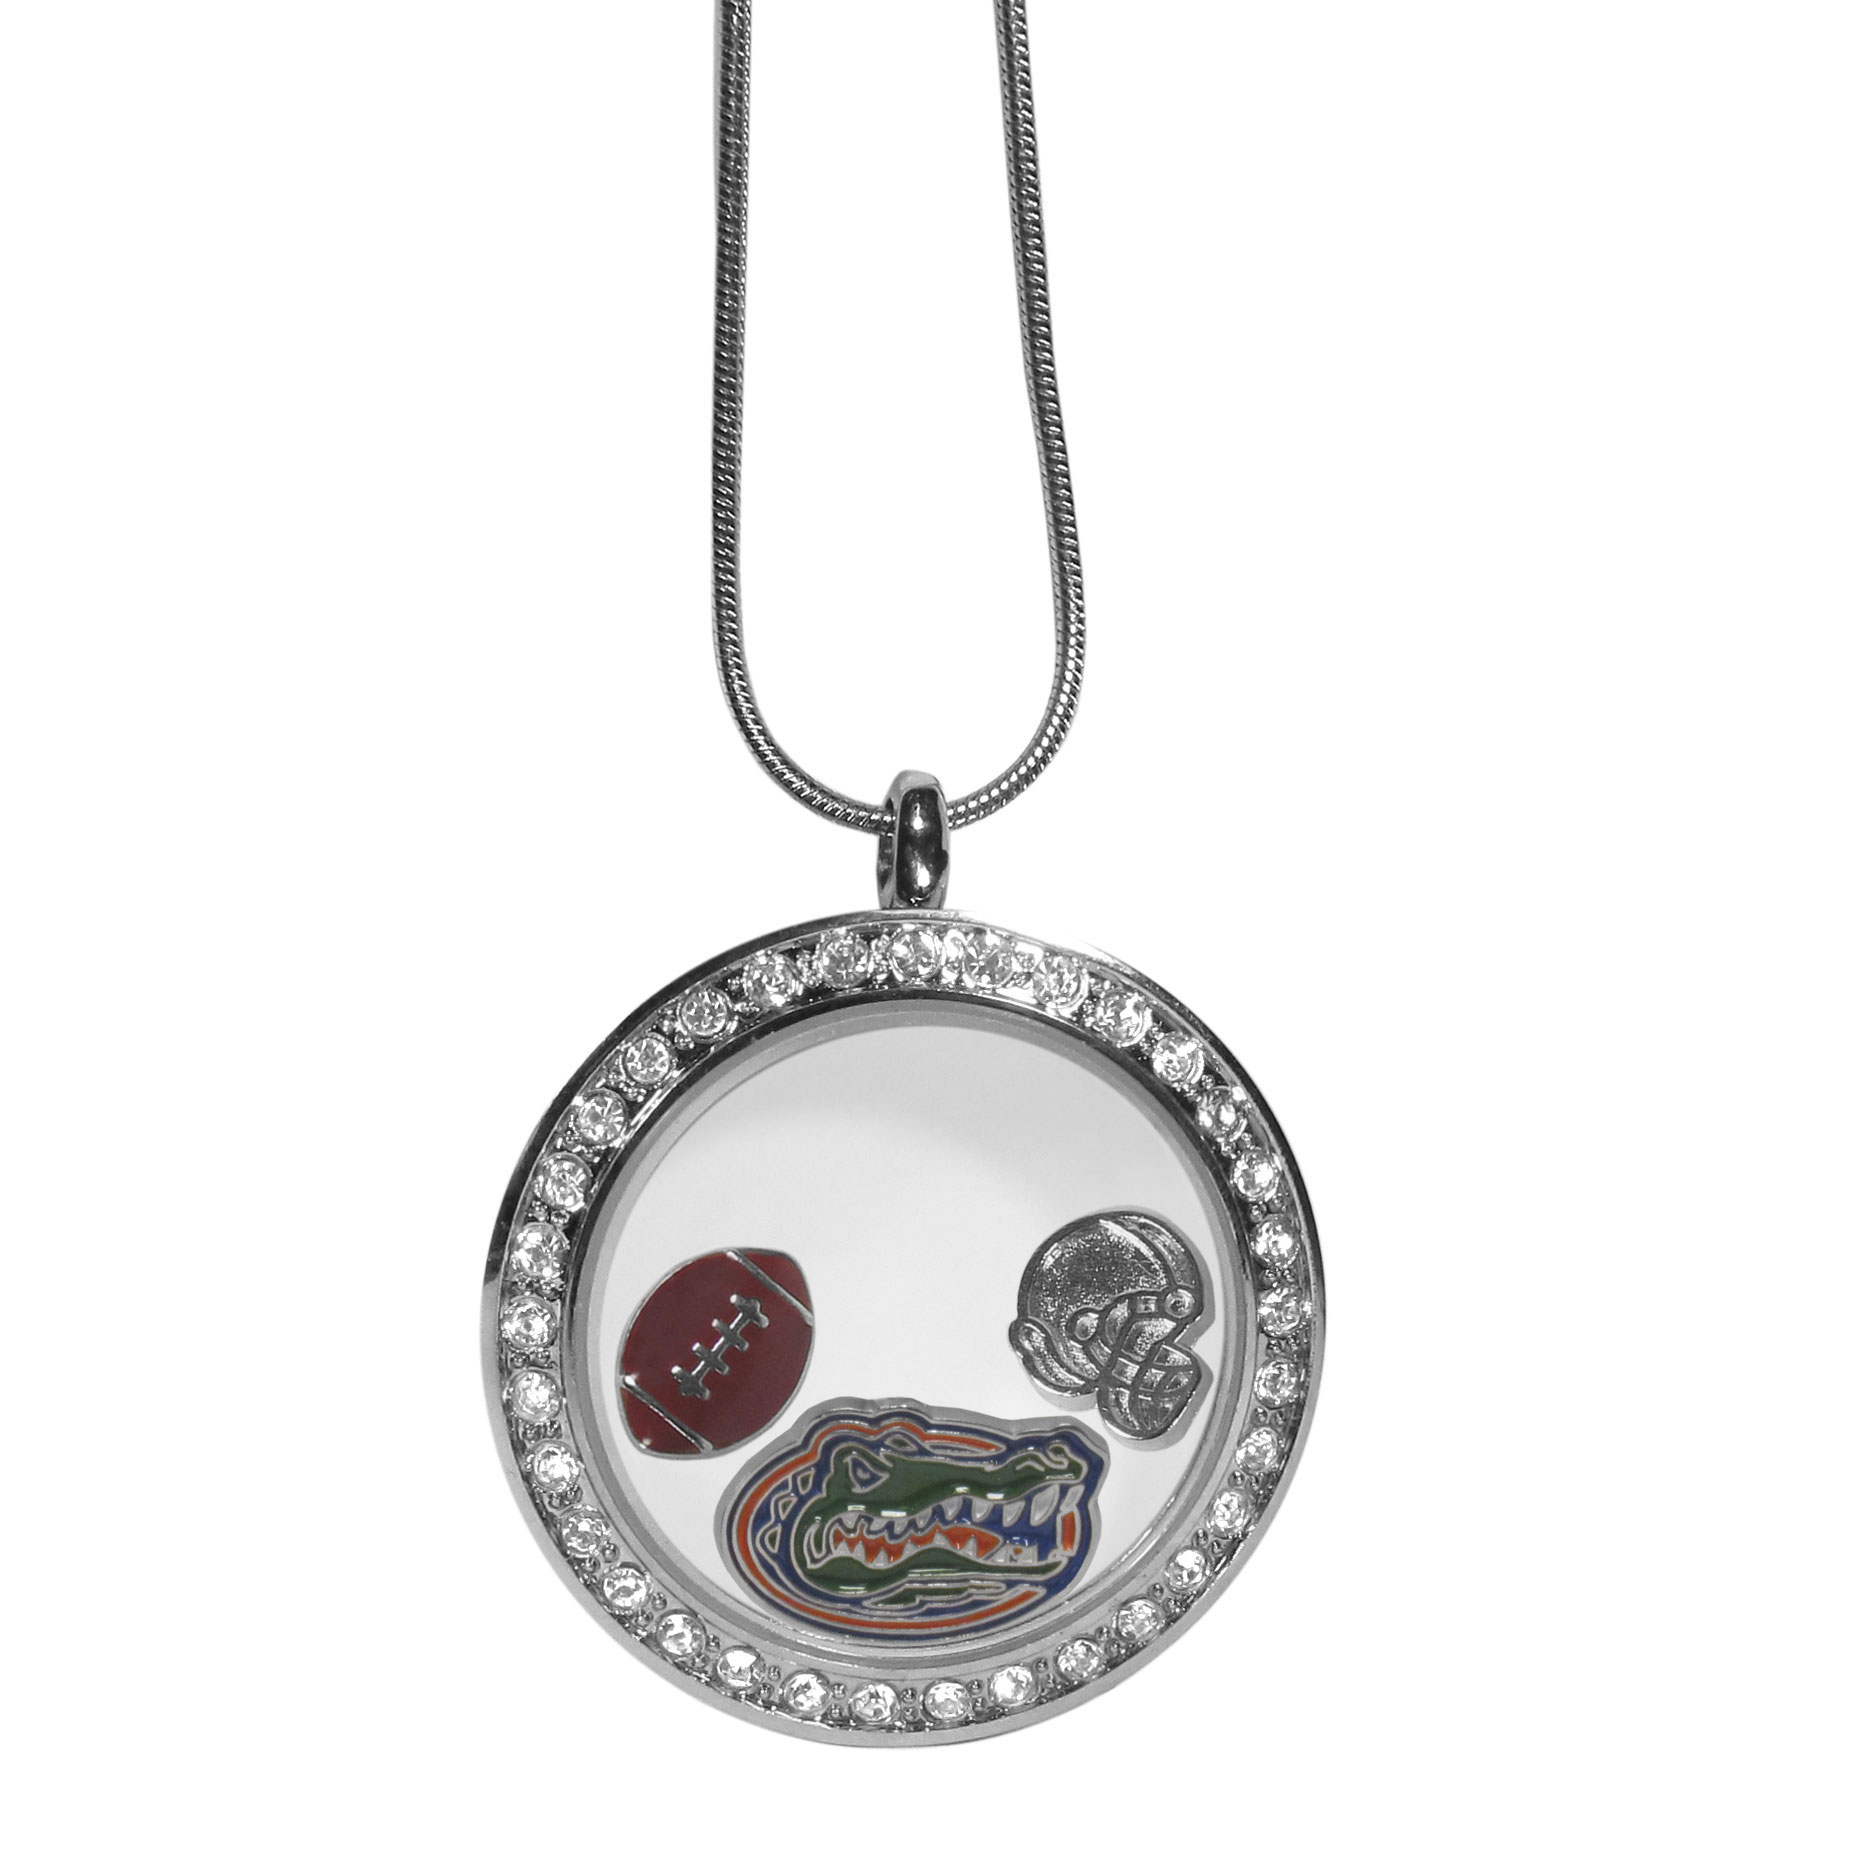 Florida Gators Locket Necklace - We have taken the classic floating charm locket and combined with licensed sports charms to create a must have fan necklace. The necklace comes with 3 charms; 1 Florida Gators charm, one football charm and one helmet charm. The charms float in a beautiful locket that has a strong magnetic closure with a rhinestone border. The locket comes on an 18 inch snake chain with 2 inch extender.